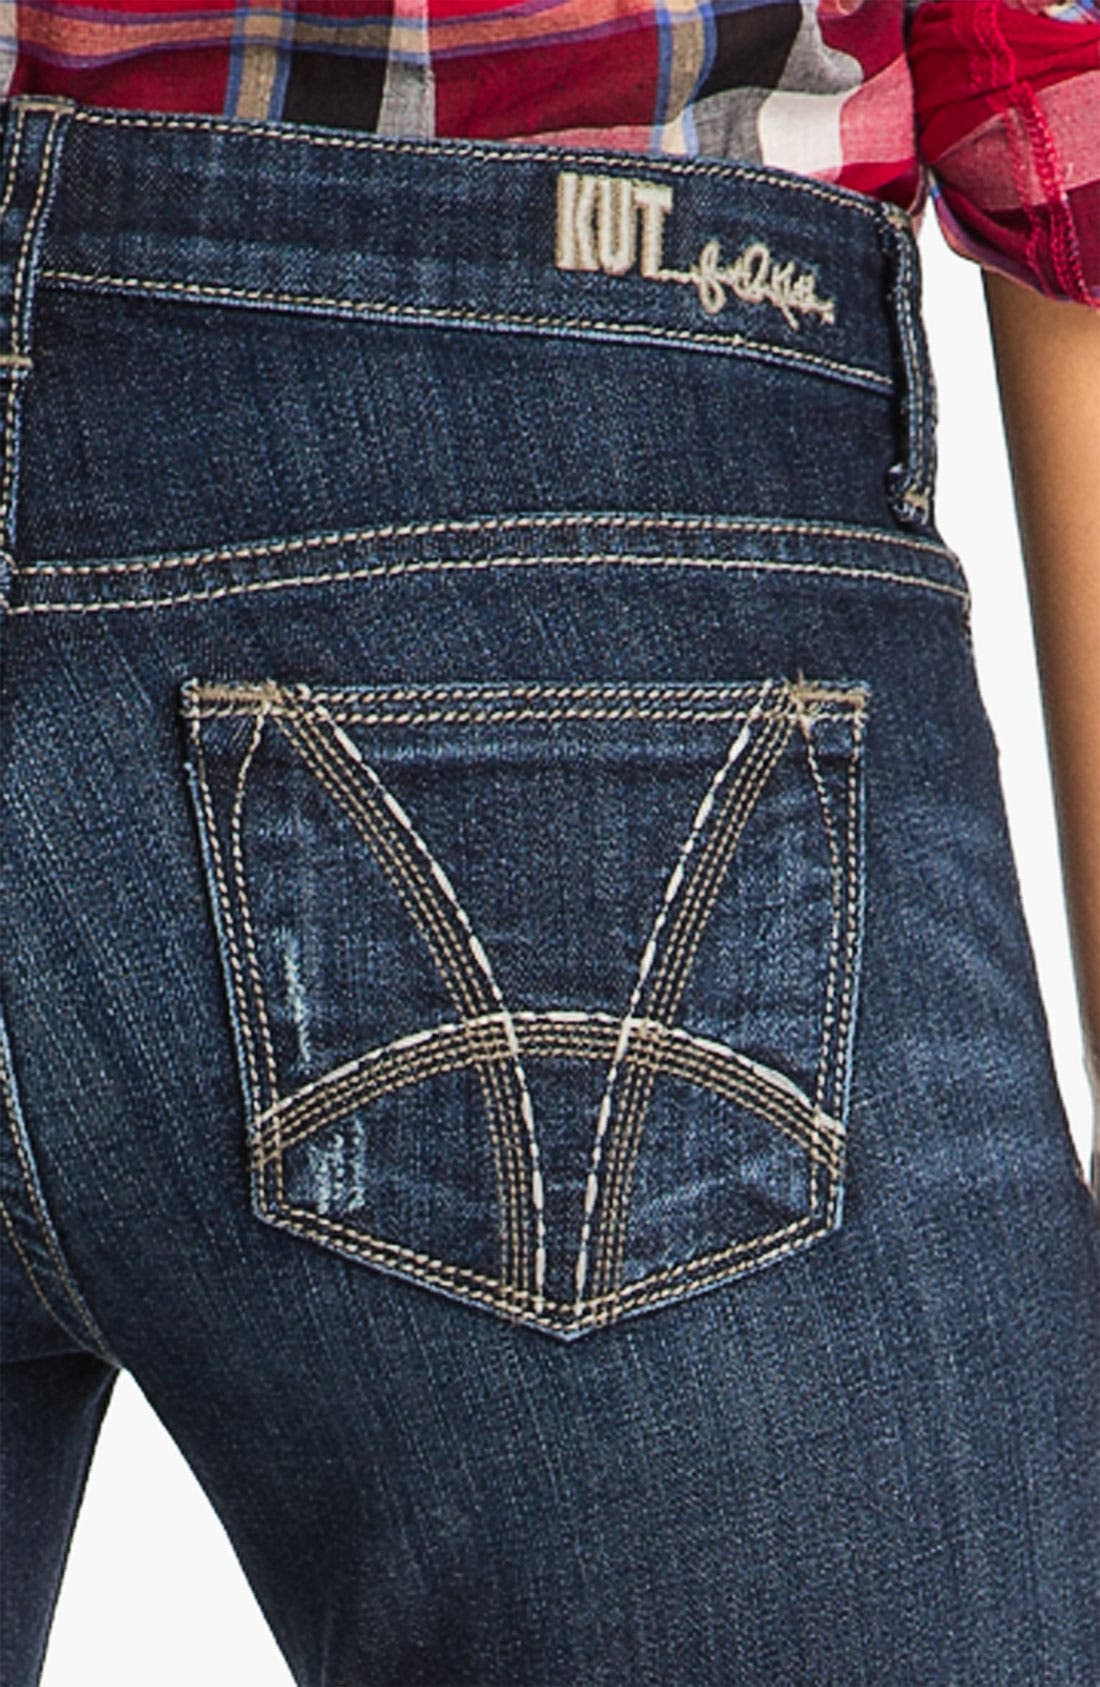 Baby Bootcut Jeans,                             Alternate thumbnail 2, color,                             400